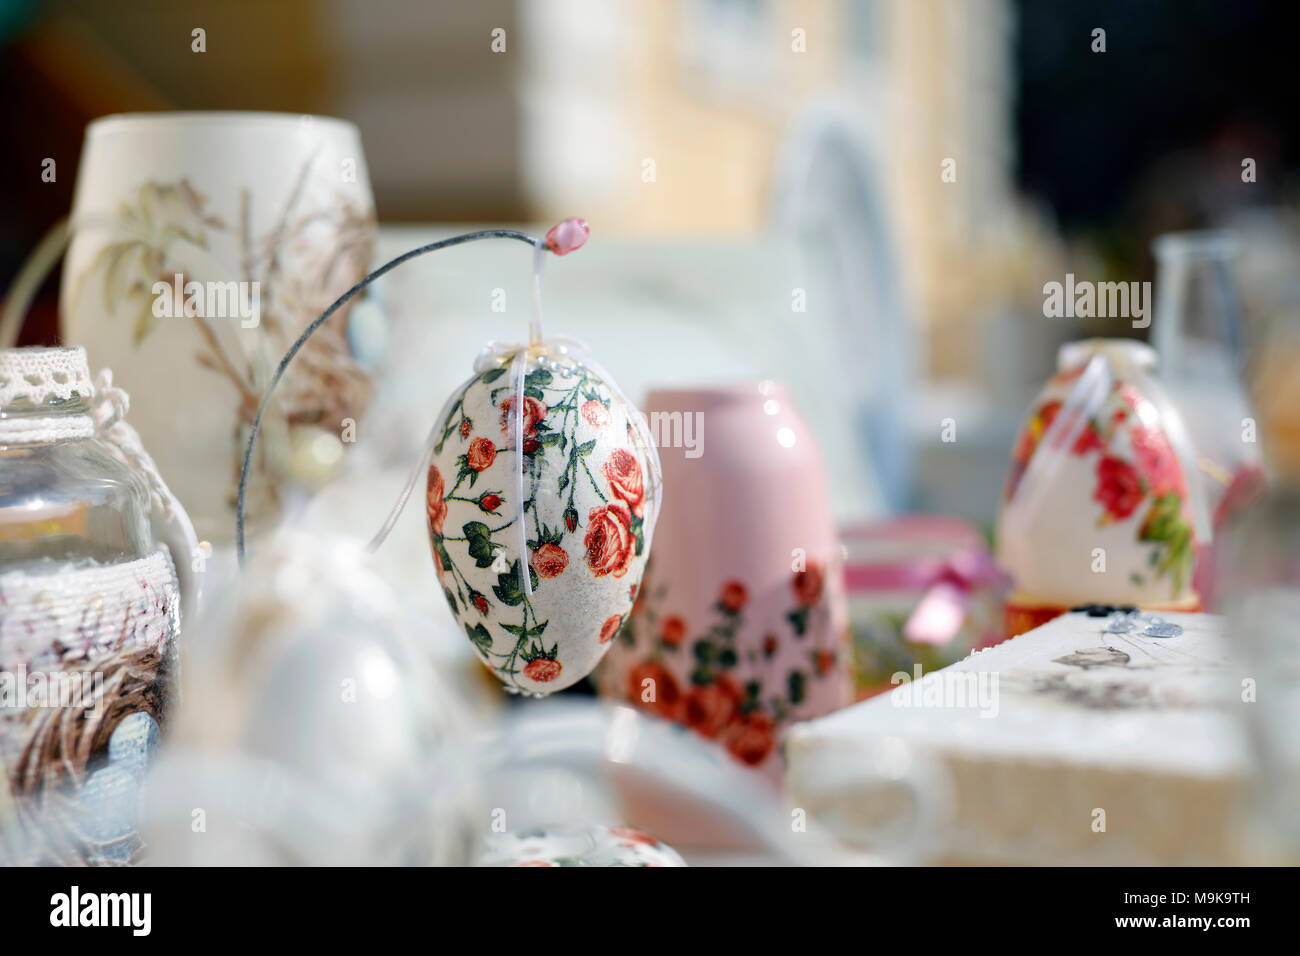 Decoupage technique. VIntage style. Shabby chic wooden boxes, glass jar and Easter egg. Stock Photo